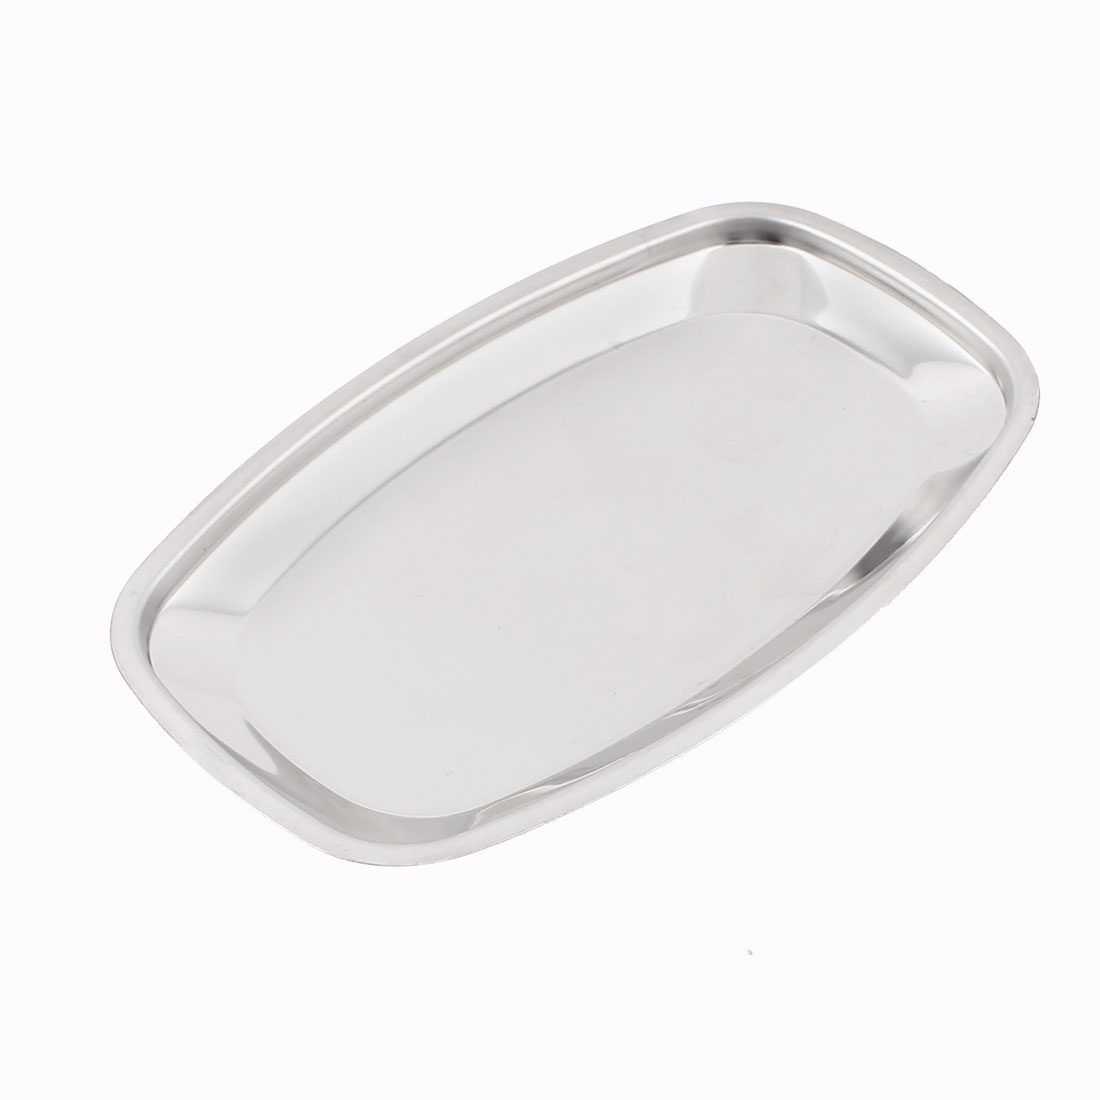 18cm x 11cm Strainless Steel Oval Napkin Towel Fruit Dish Plate Tray